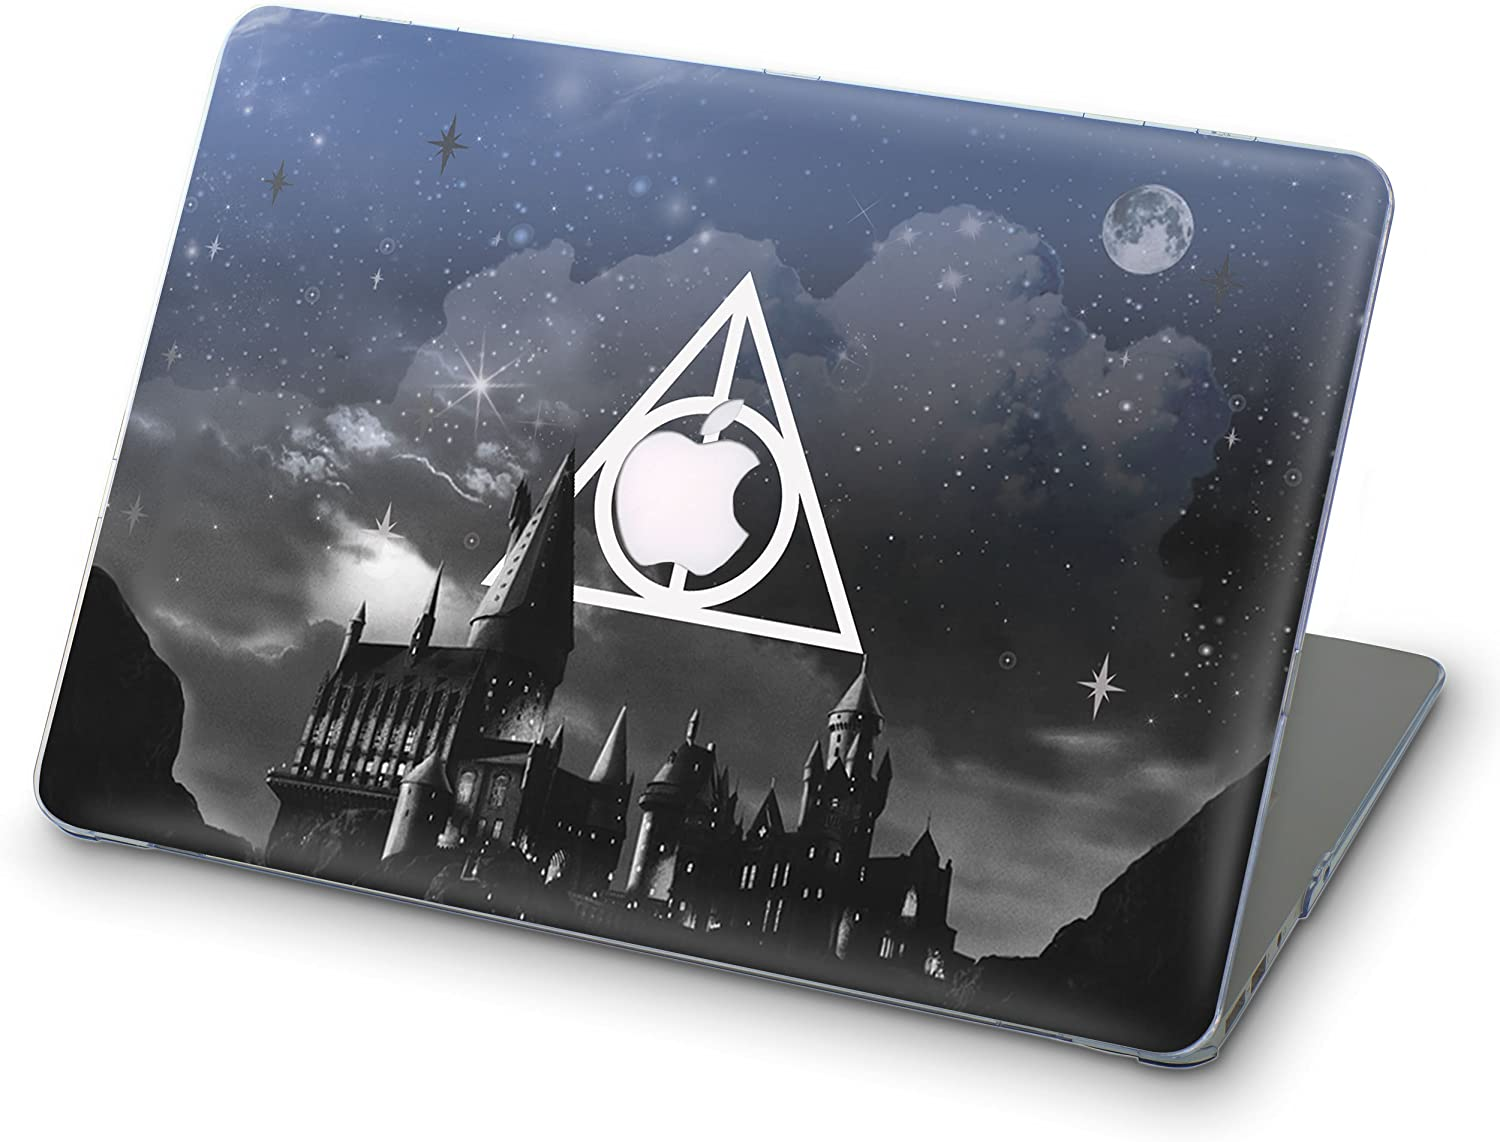 "696designers 3D Varnished Ornamental Monogrammed Full Cover Hard Shell Case for Apple Macbook Pro Retina 15.4"" (Harry Potter) A1398 (2013-2015), Retina Display, without CD-ROM, NOT fit Pro 15 2016"